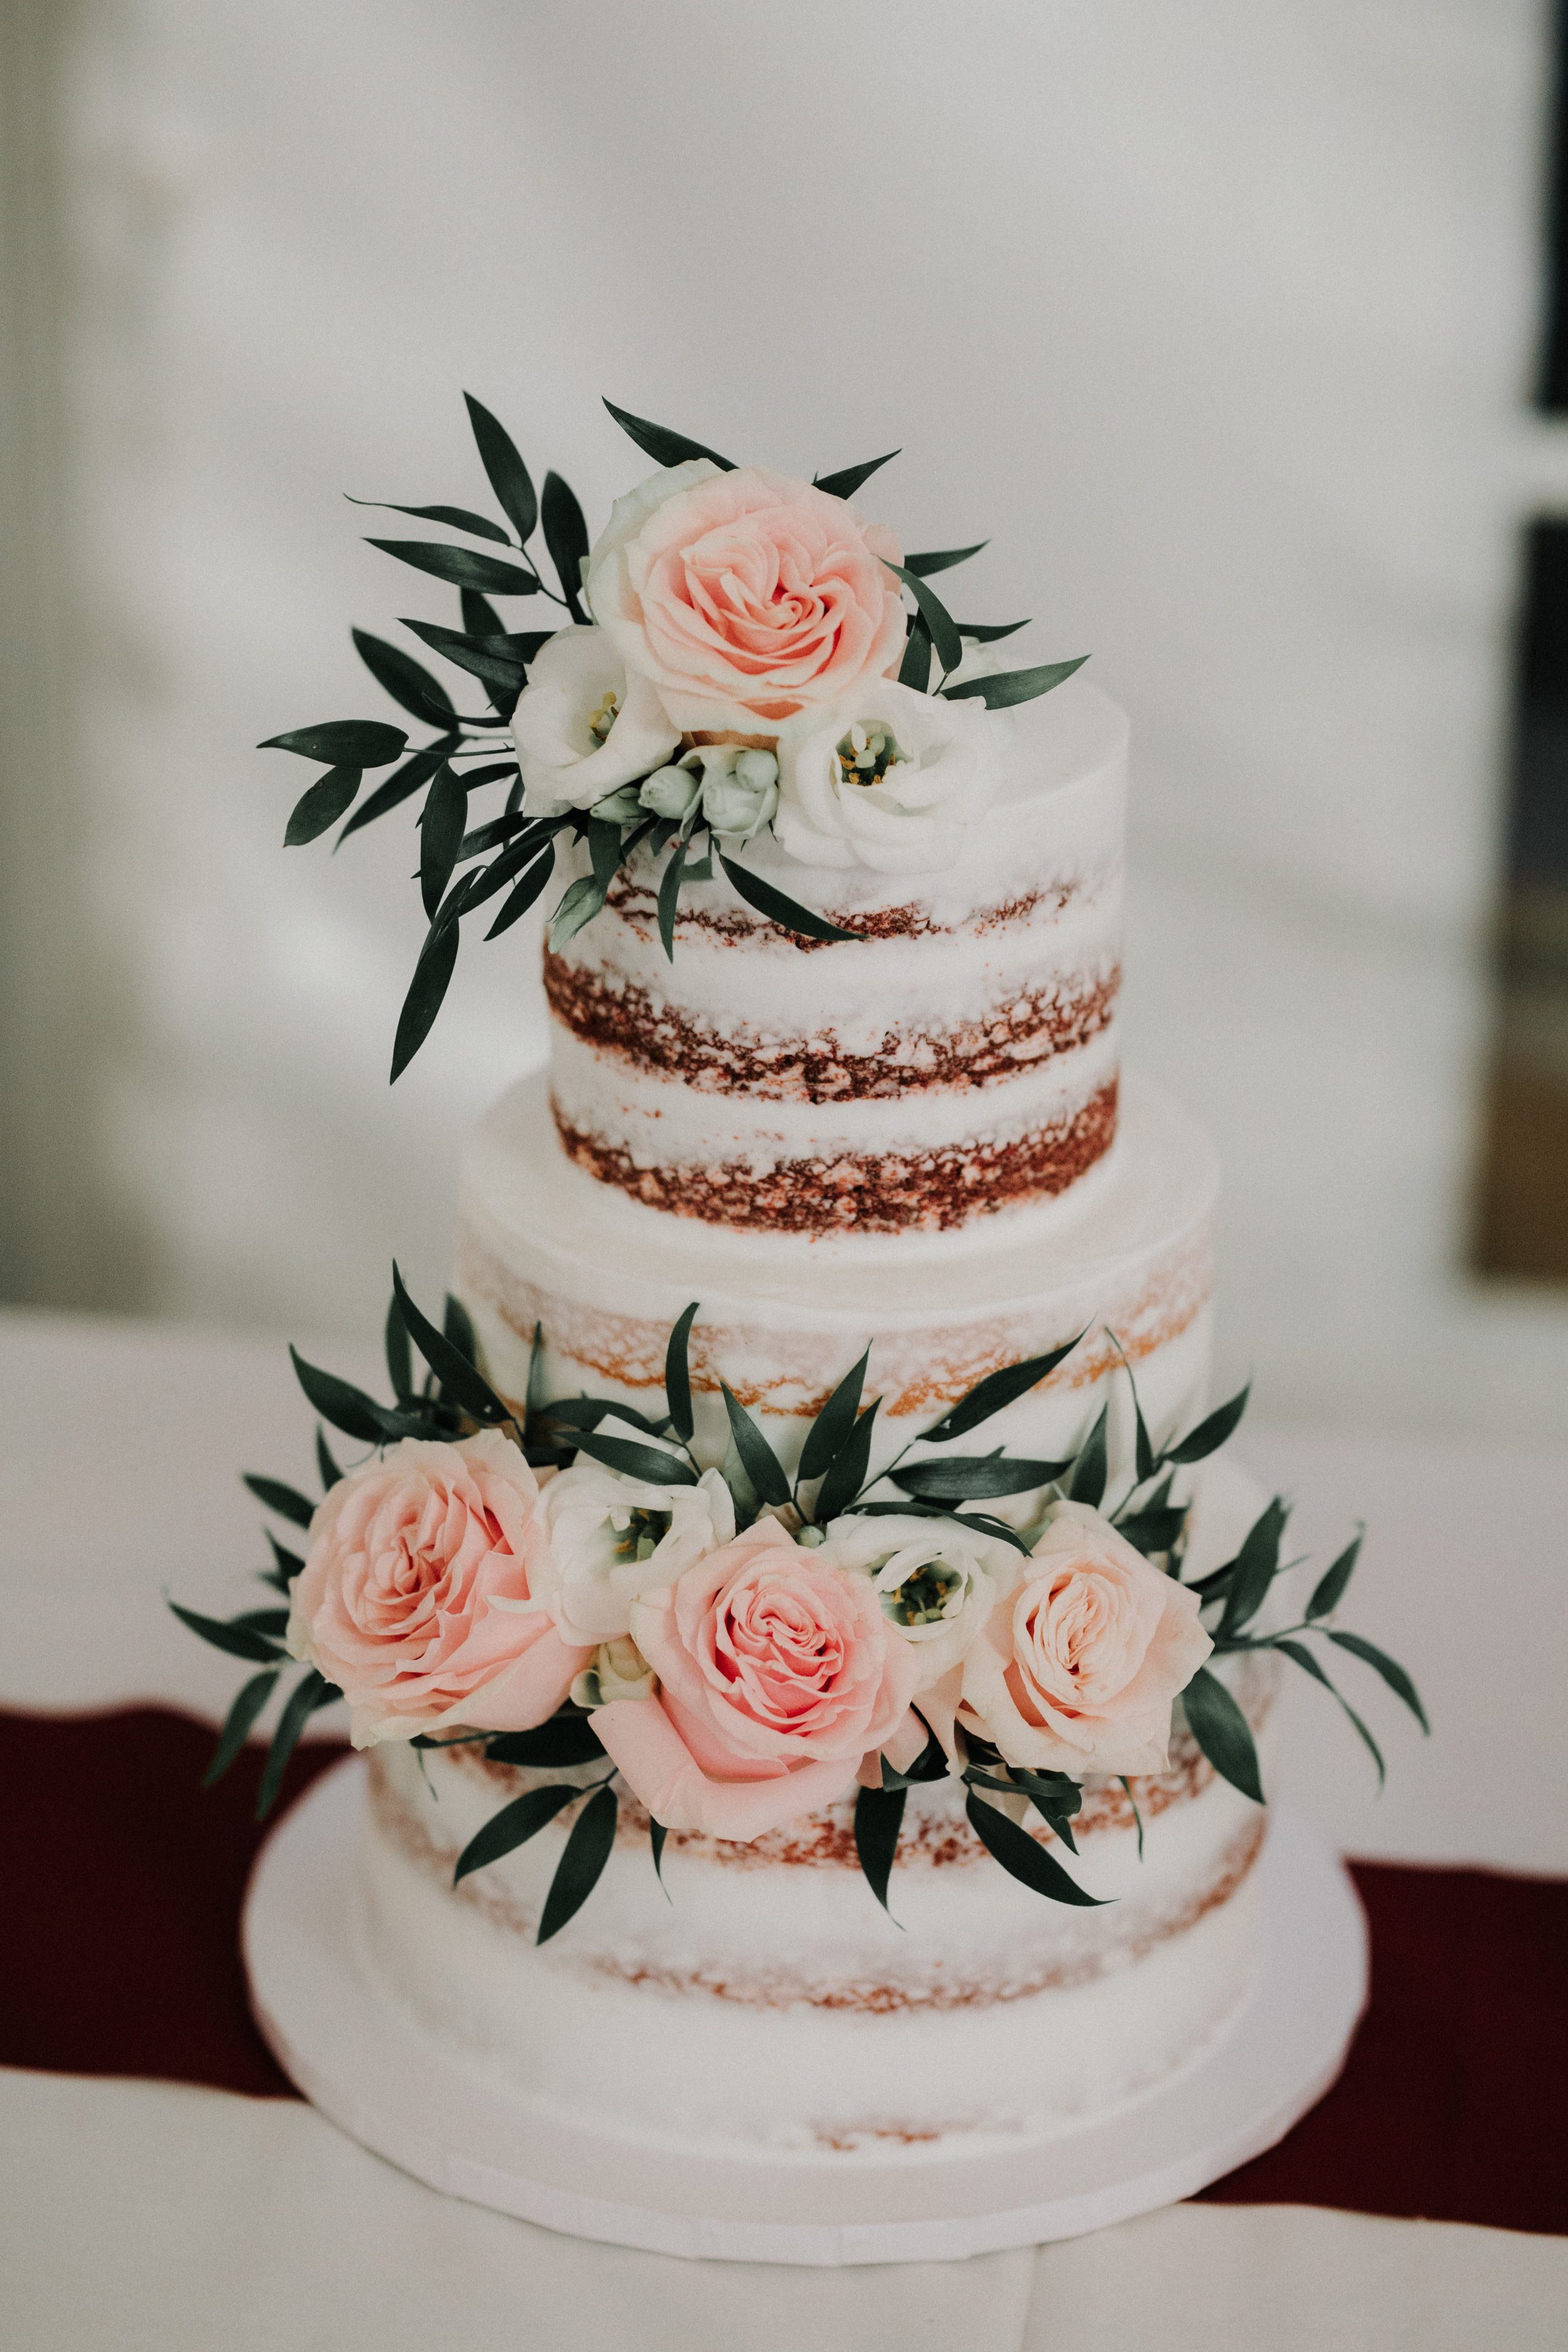 Gorgeous White Naked Cake - Dara's Garden Knoxville East Tennessee Wedding — The Overwhelmed Bride Wedding Blog